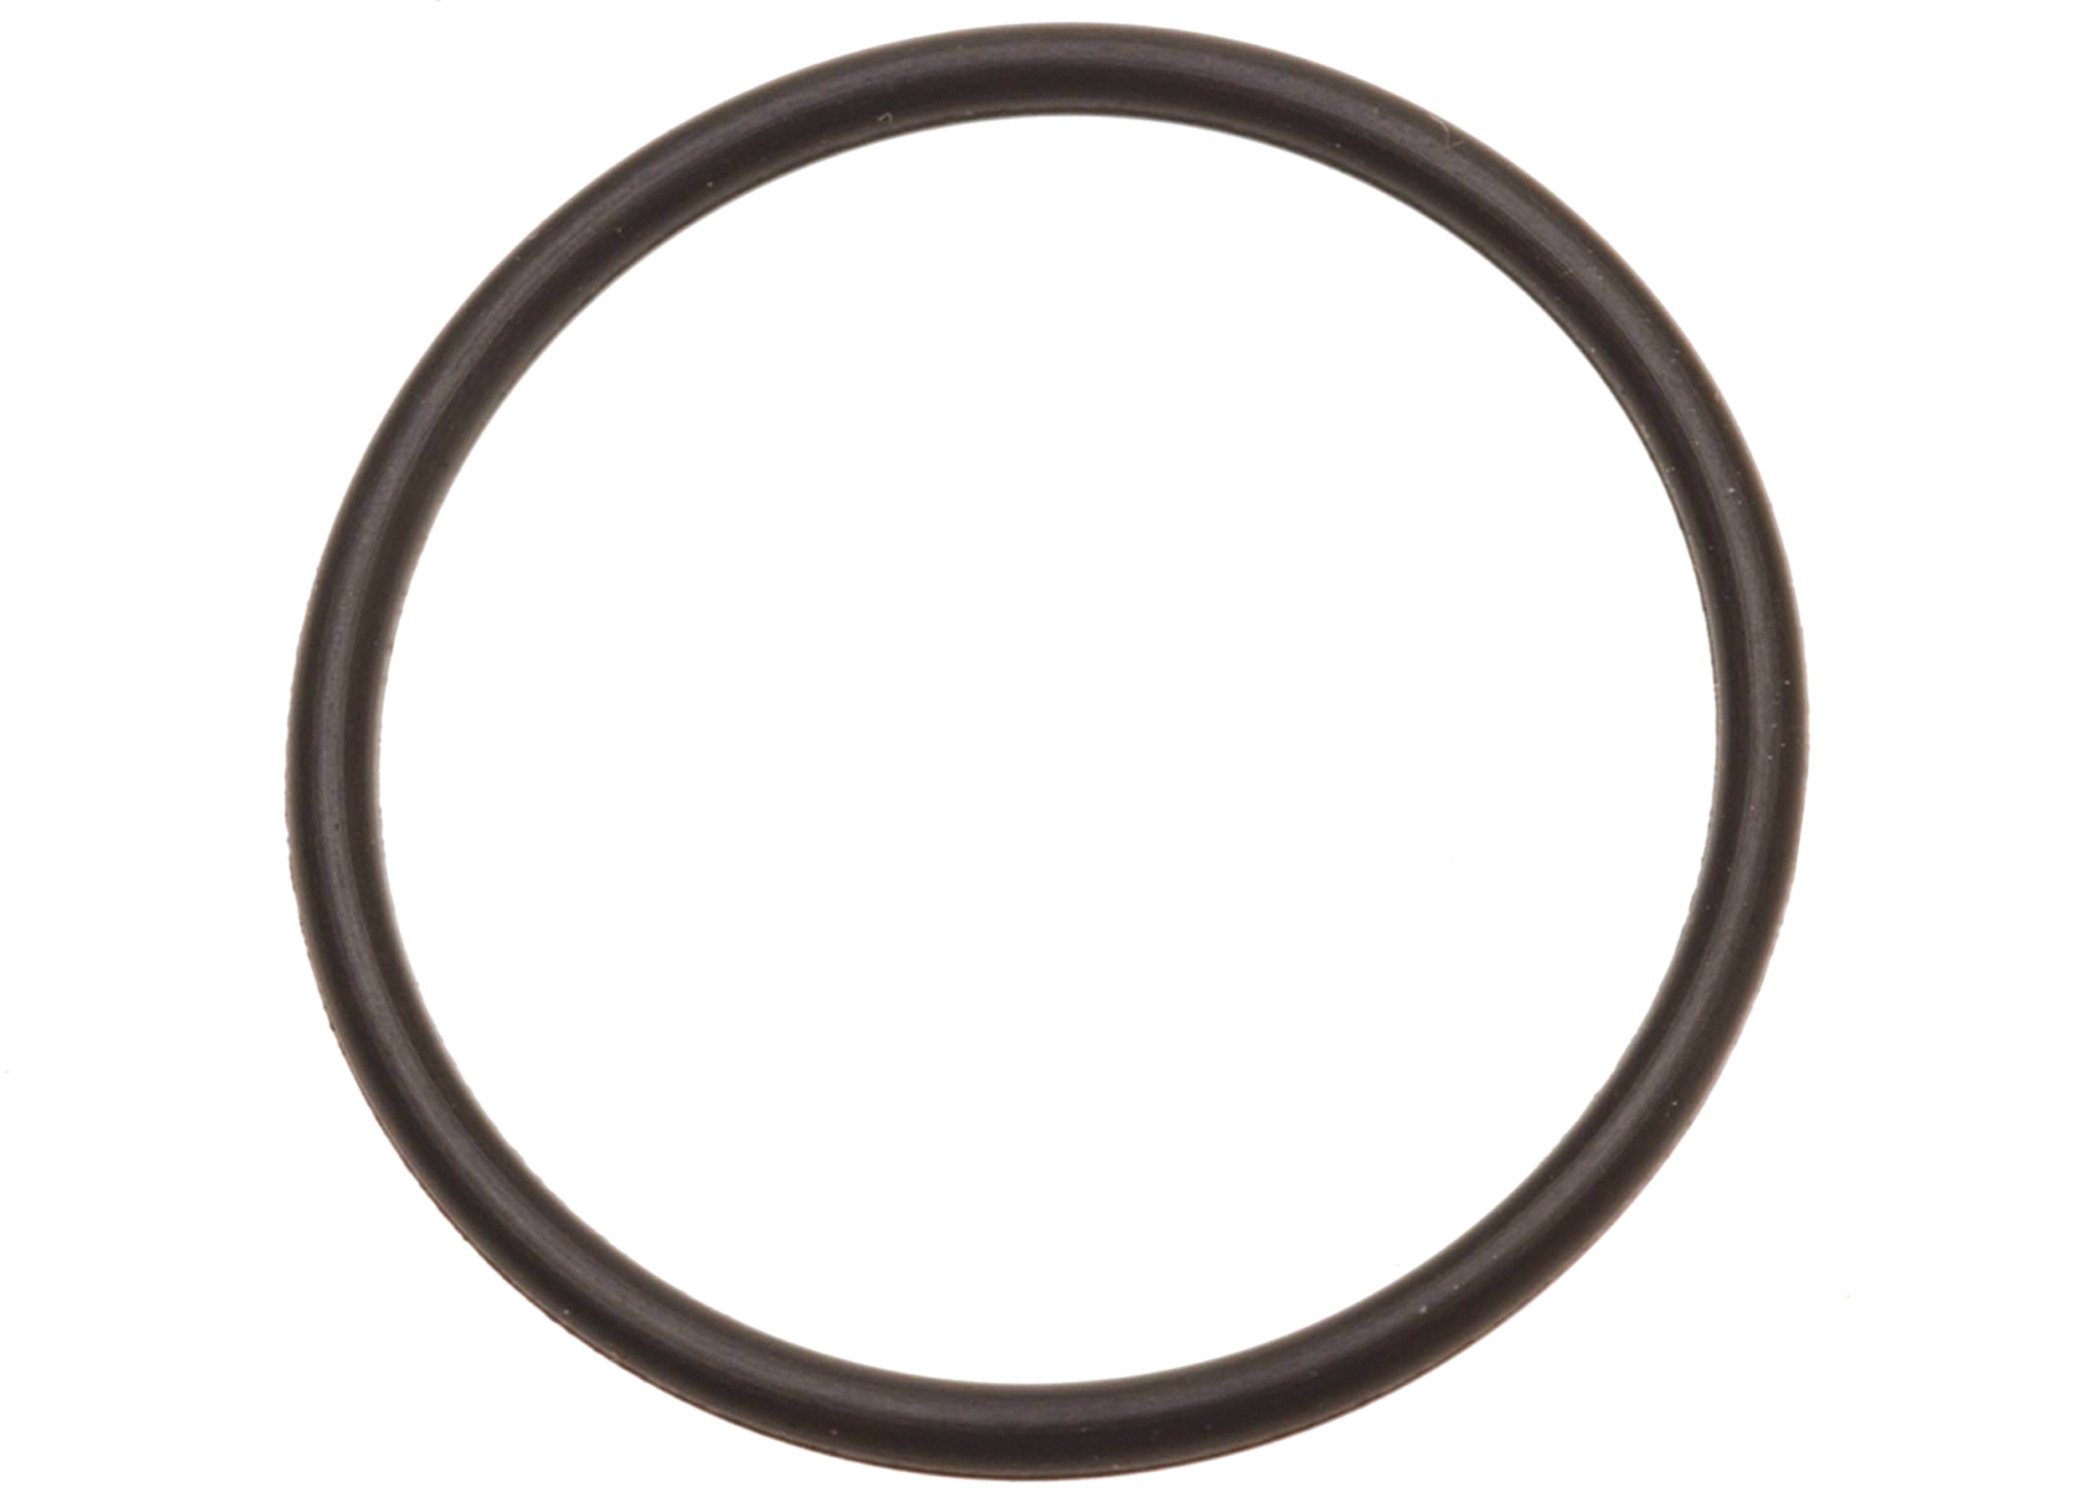 ACDELCO OE SERVICE - Turbine Shaft Front Fluid Seal Ring - DCB 8661760